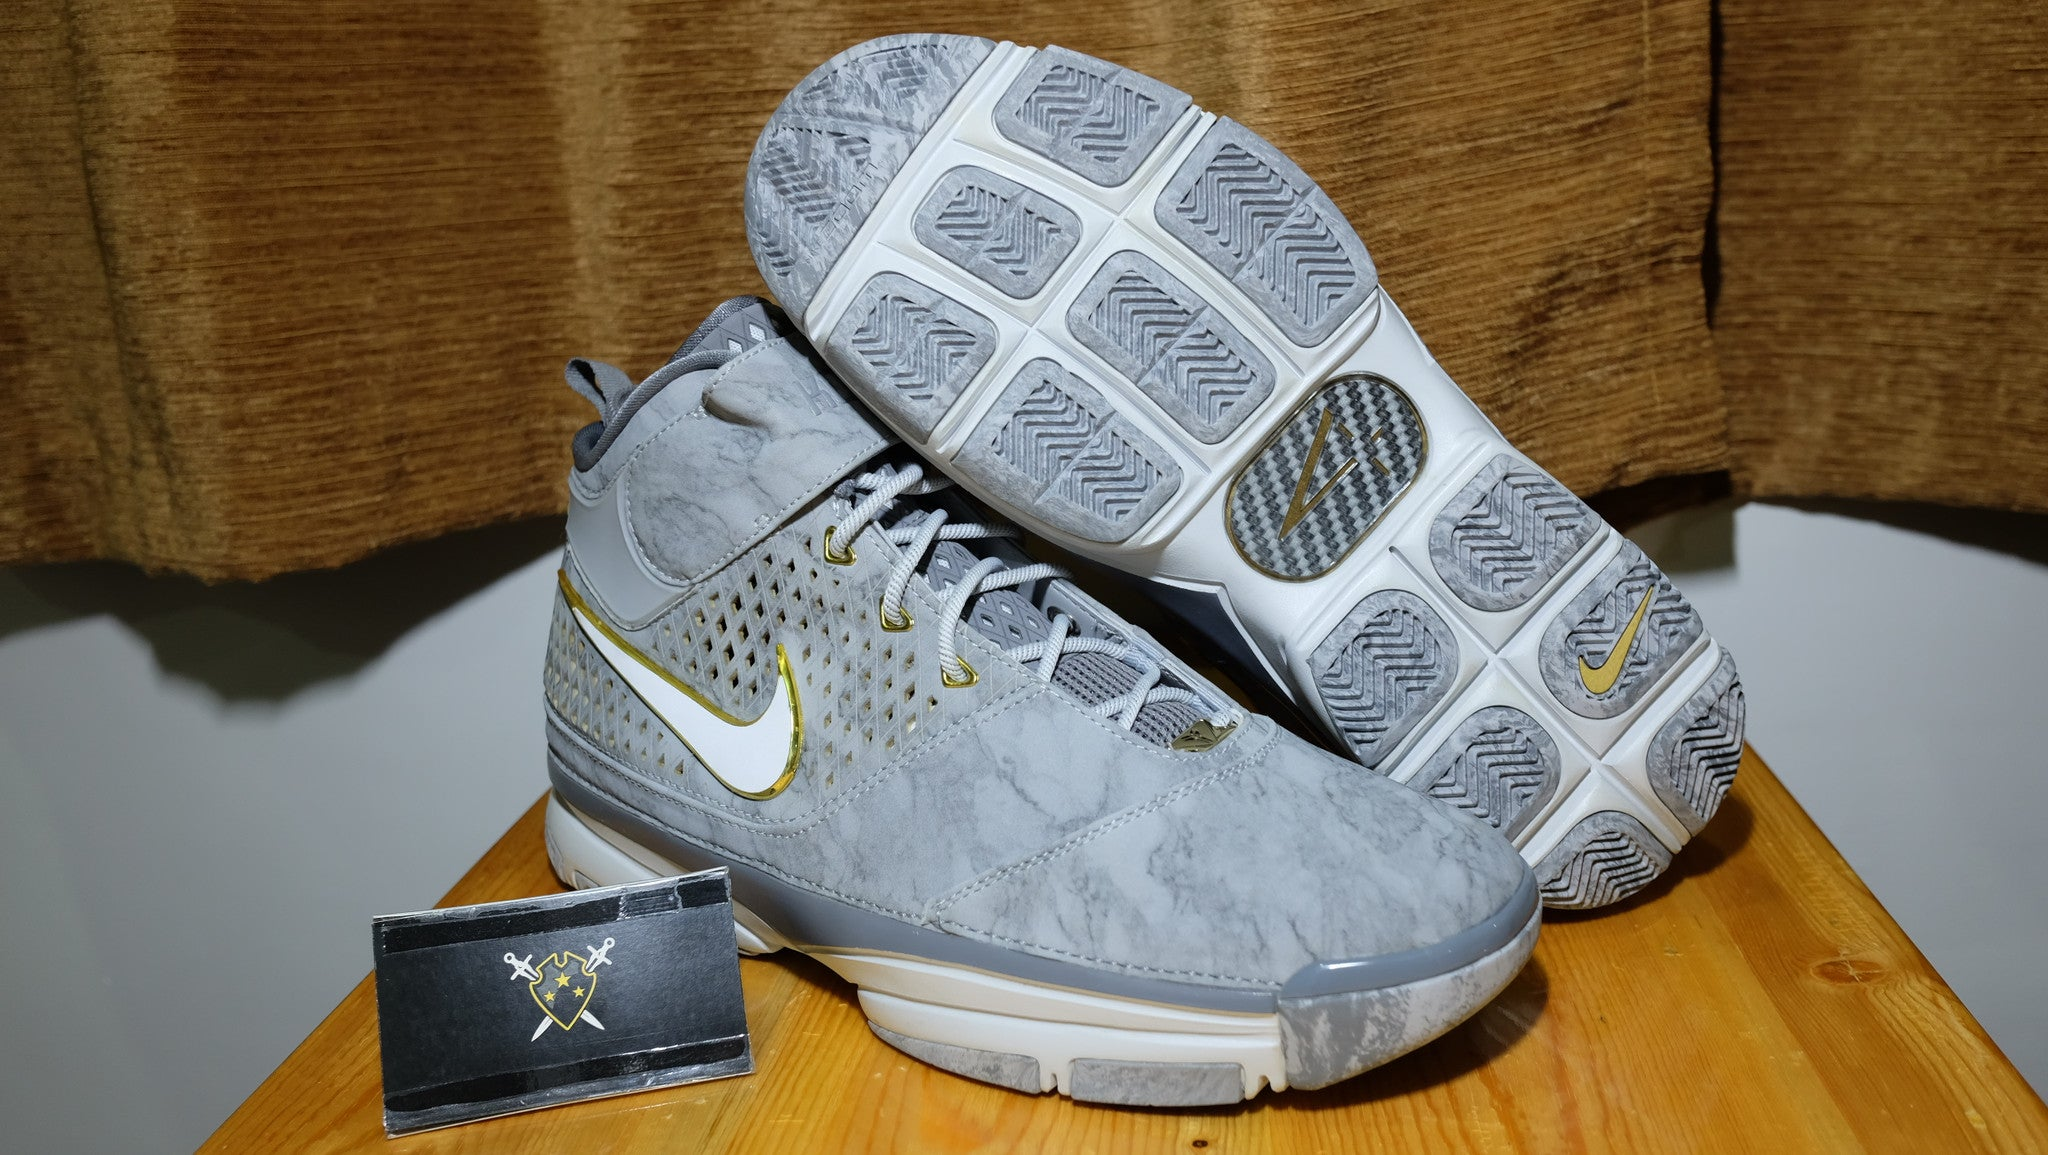 best authentic 924e7 08581 ... Nike Zoom kobe 2   Prelude DarkSole.net (6) ...